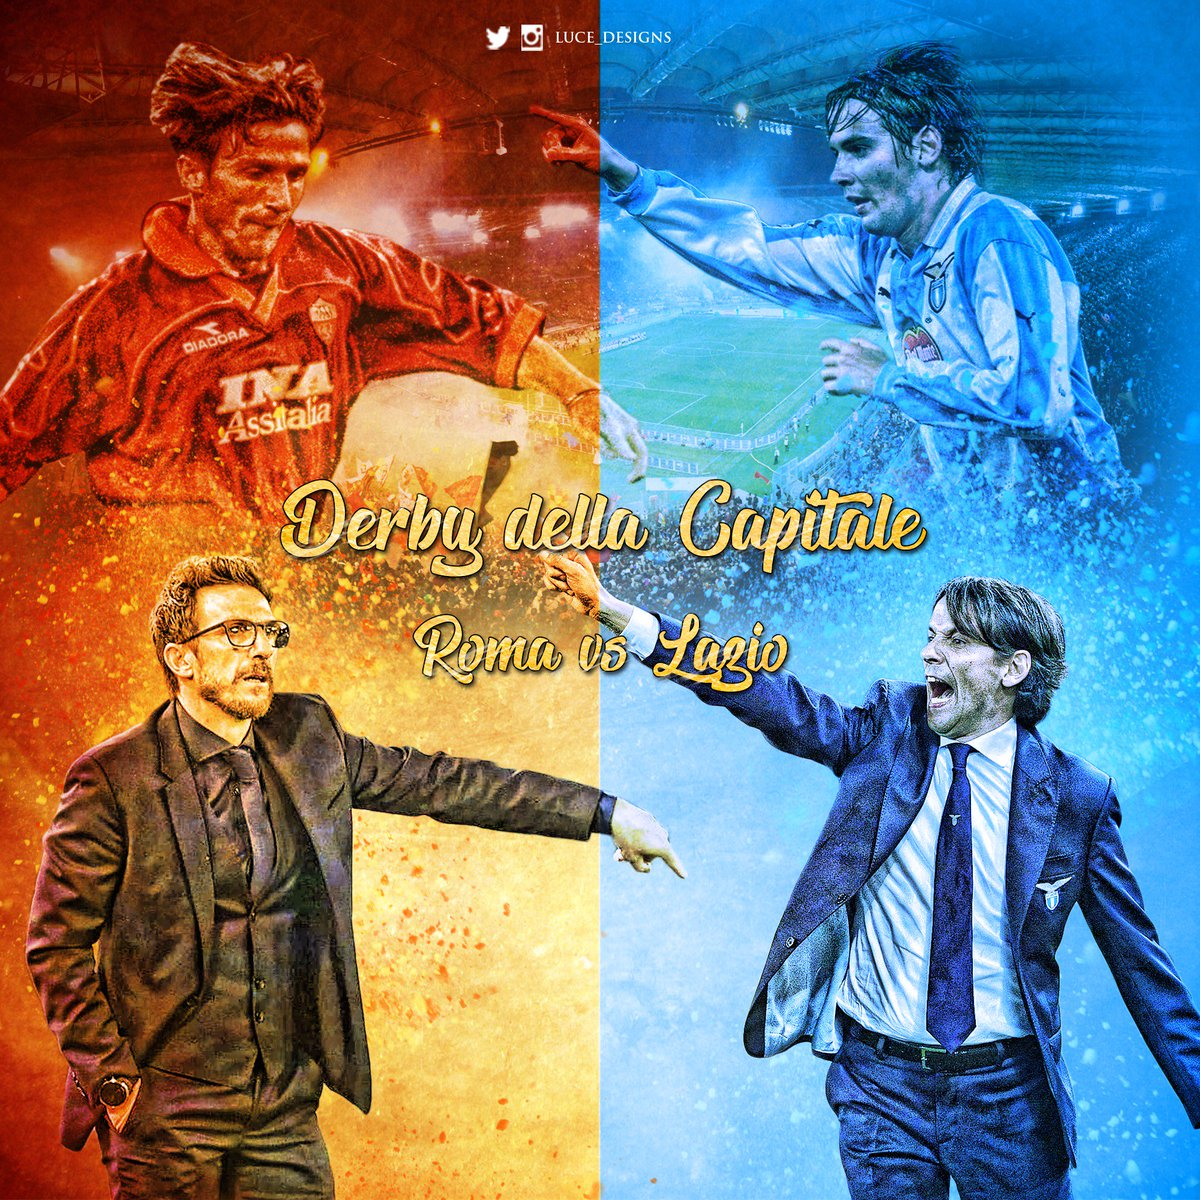 Derby della Capitale, who is going to win? @OfficialASRoma vs @OfficialSSLazio   RT&#39;s and likes appreciated!  #RomaLazio #Roma #Lazio #DerbyDellaCapitale #Derby #DerbyDay #Inzaghi #DiFrancesco<br>http://pic.twitter.com/UwqYDU4ome